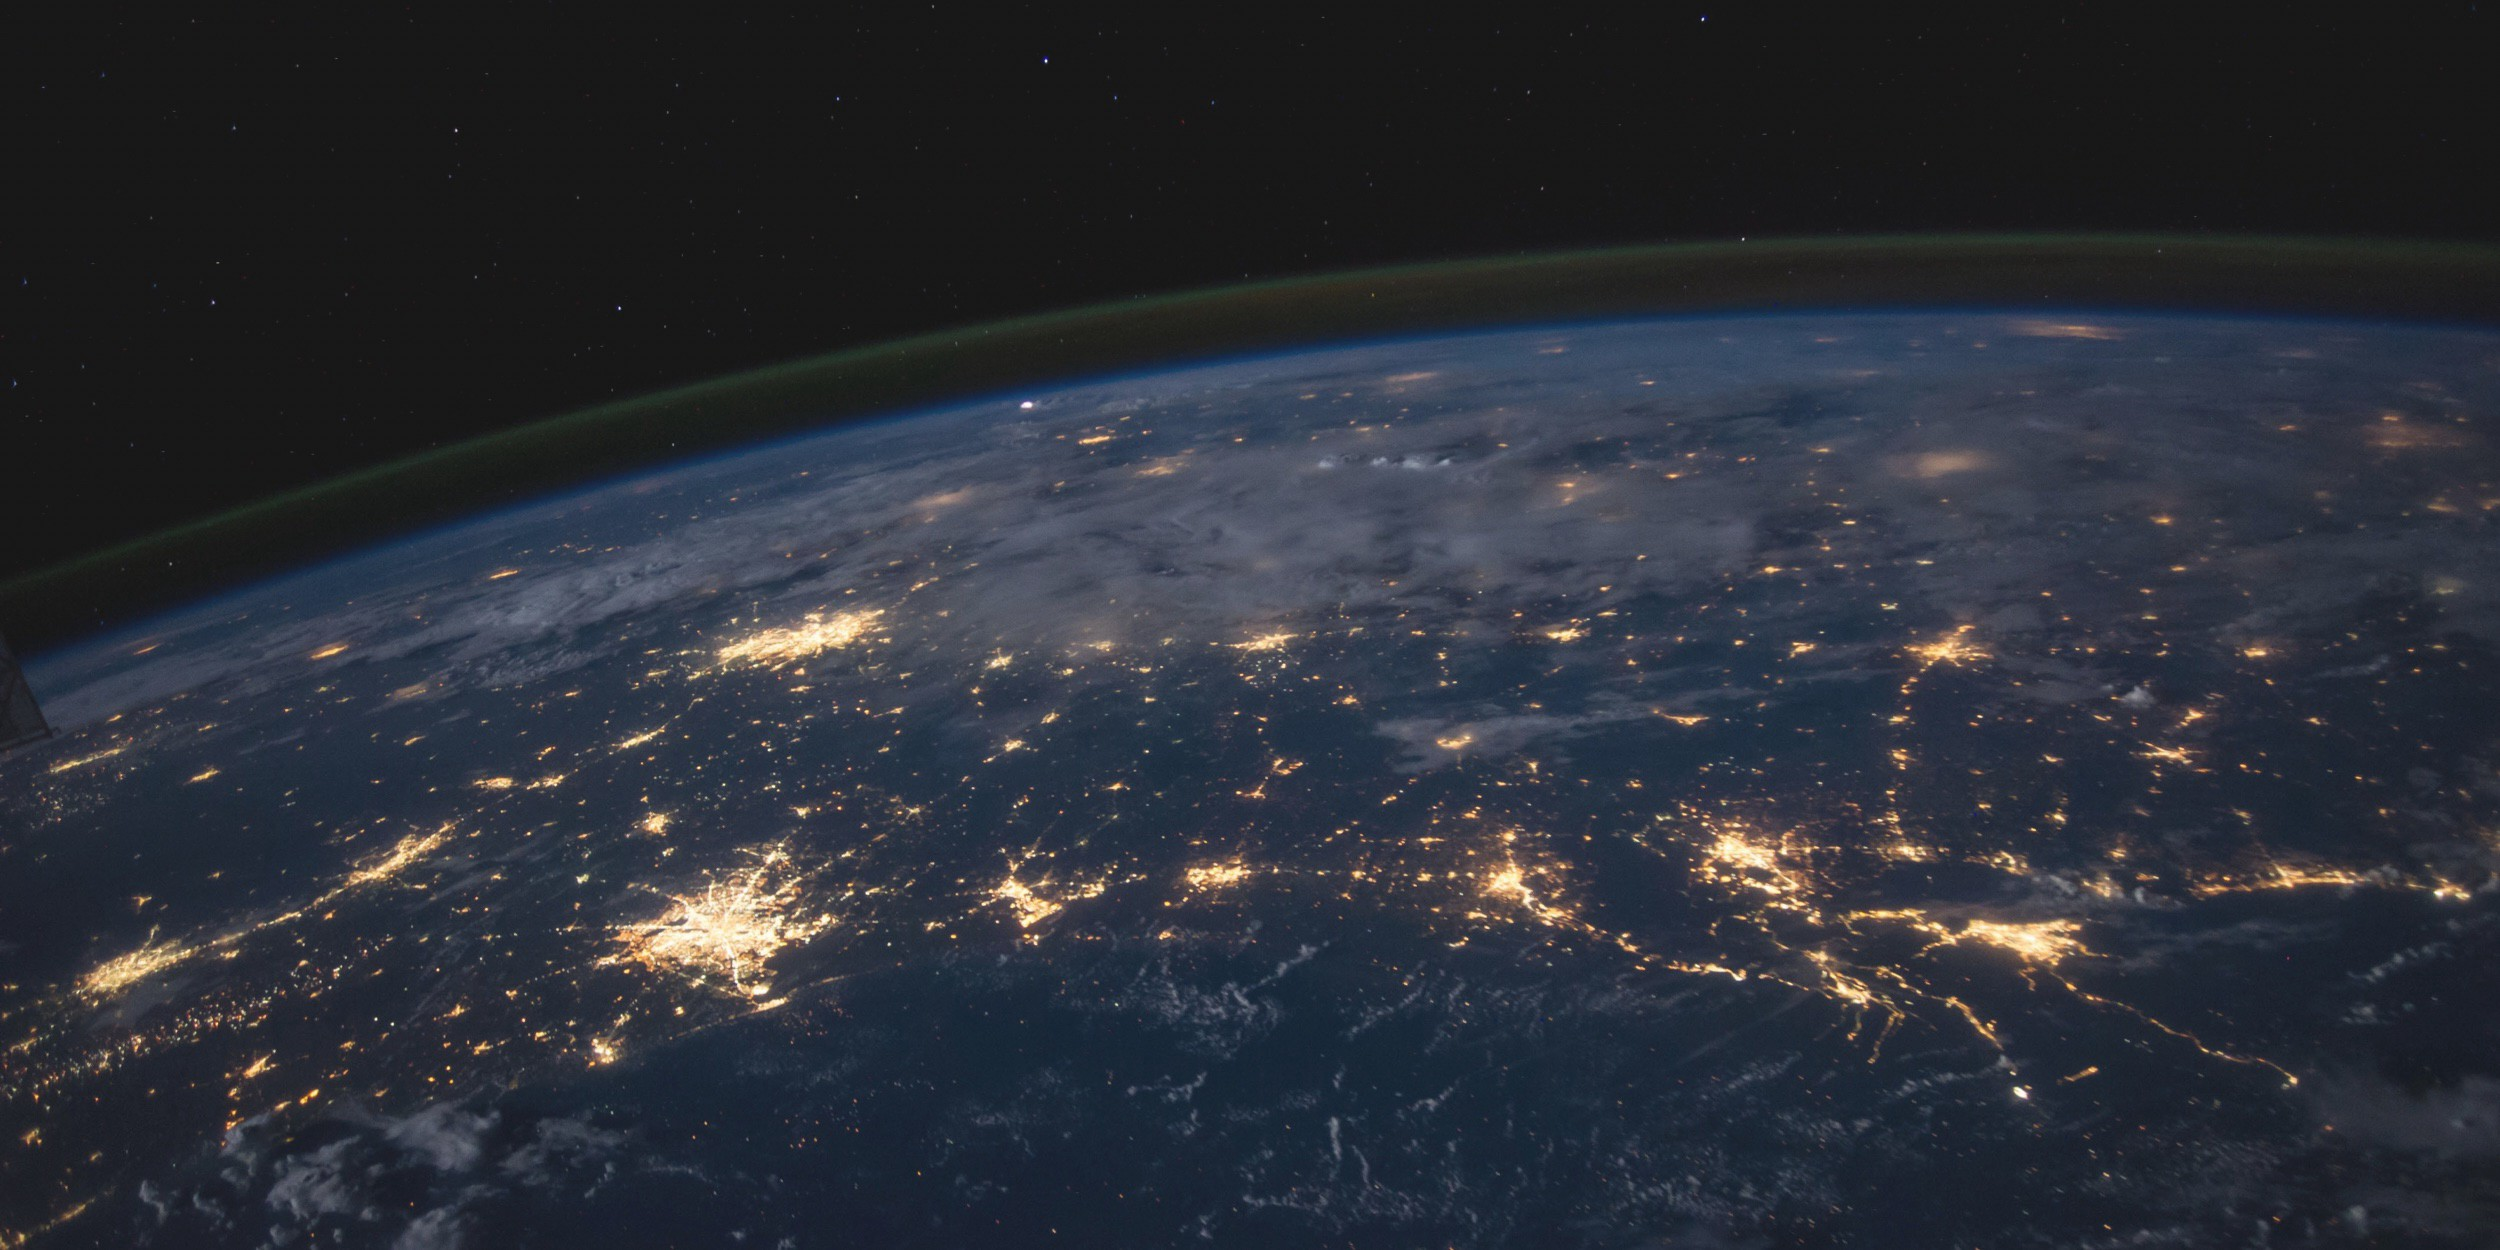 An outer-space view of the Earth showing electronic communications networks